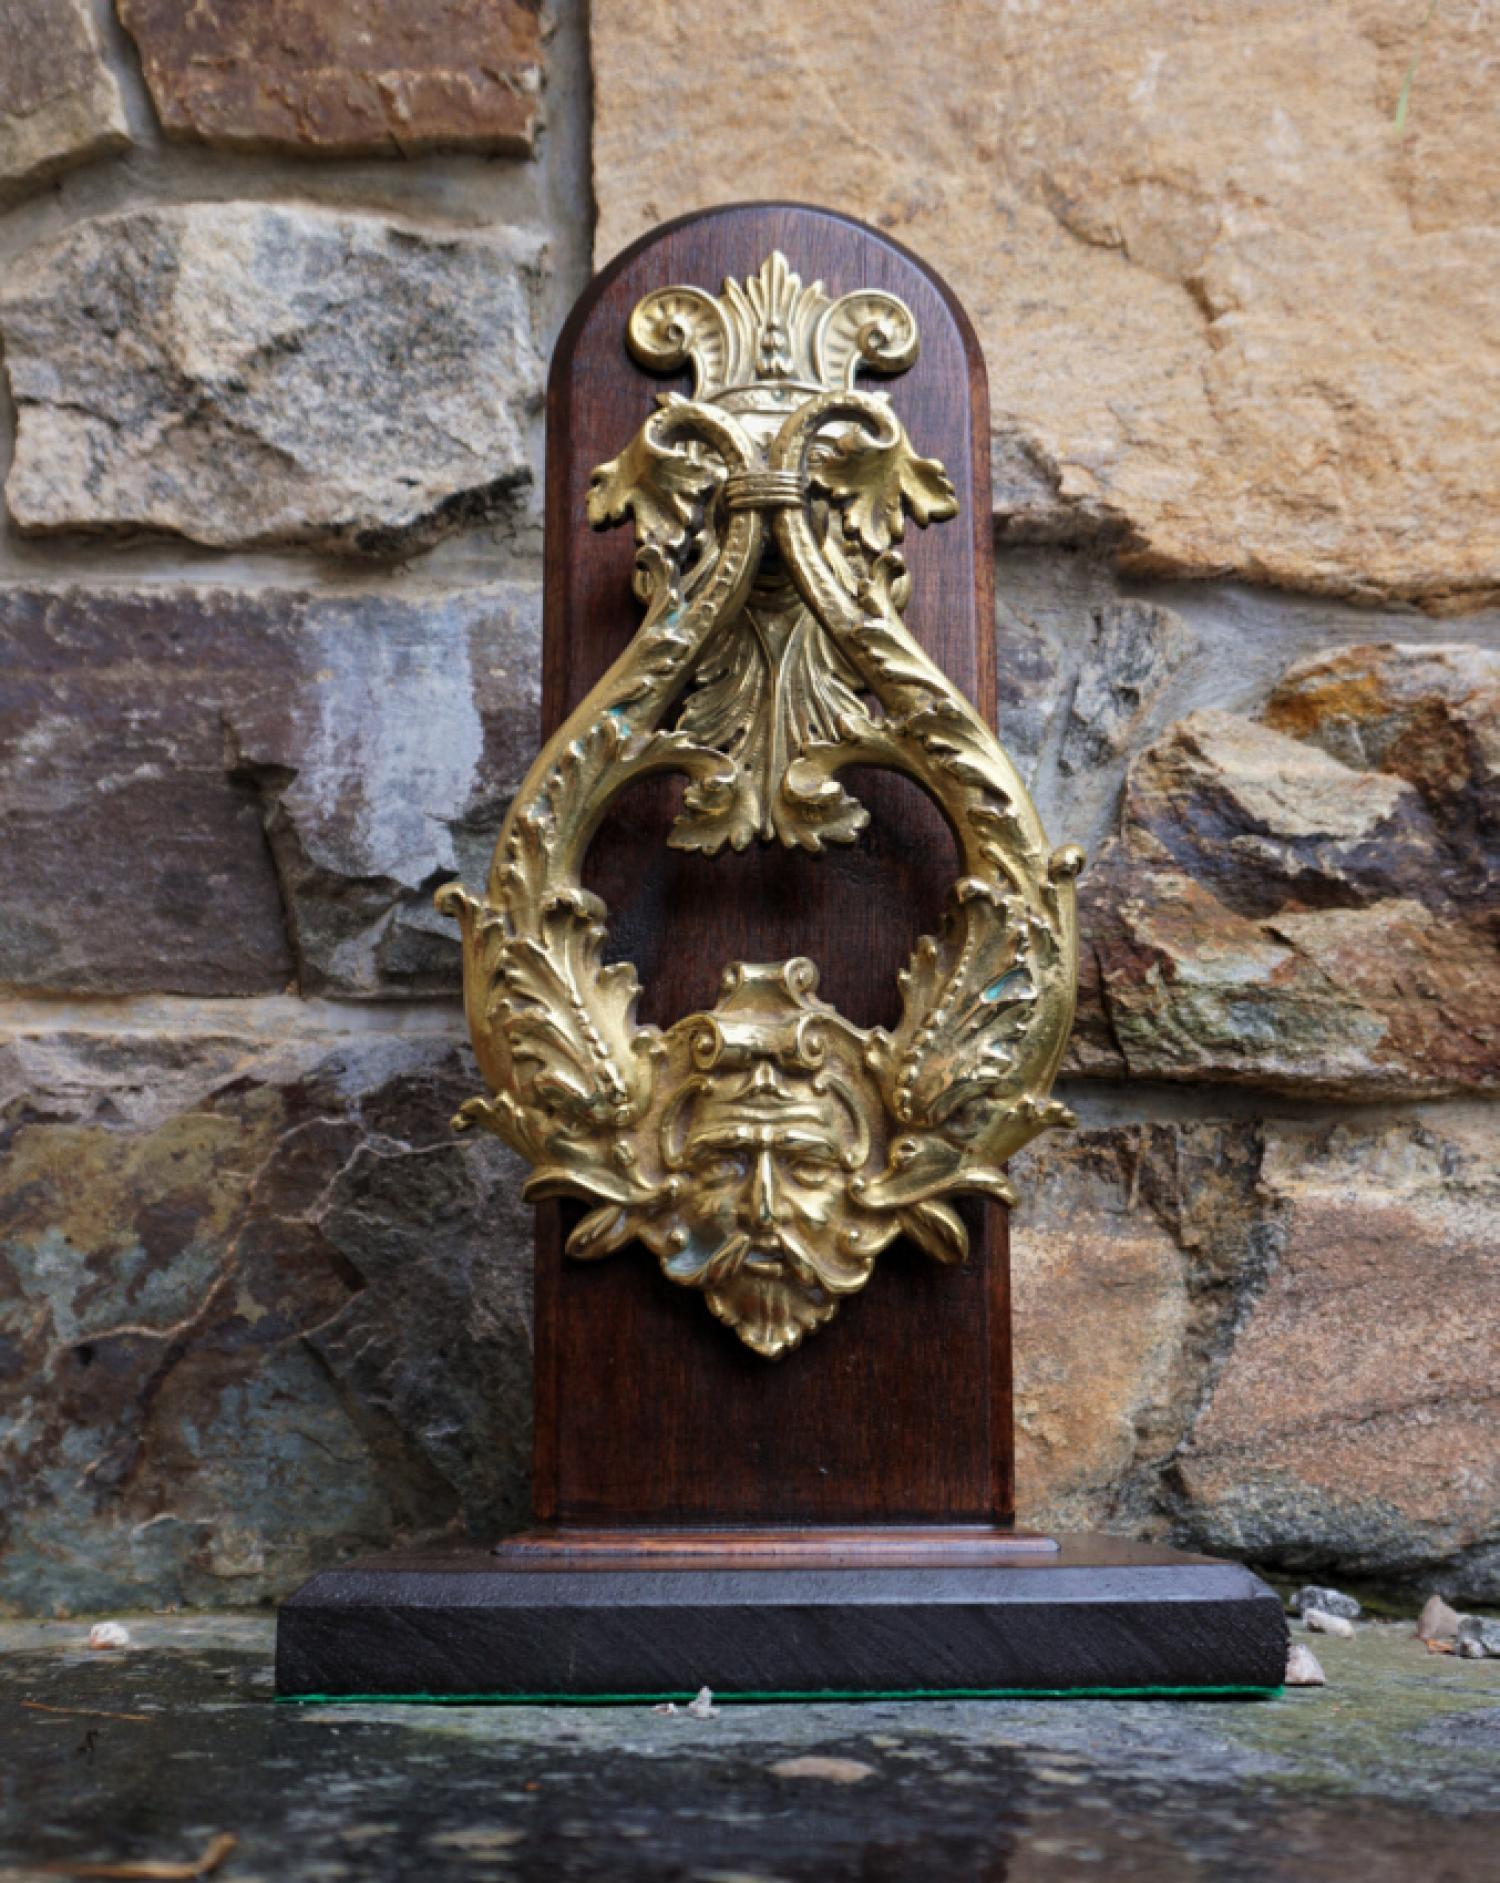 Large antique English brass door knocker with dolphins and figures